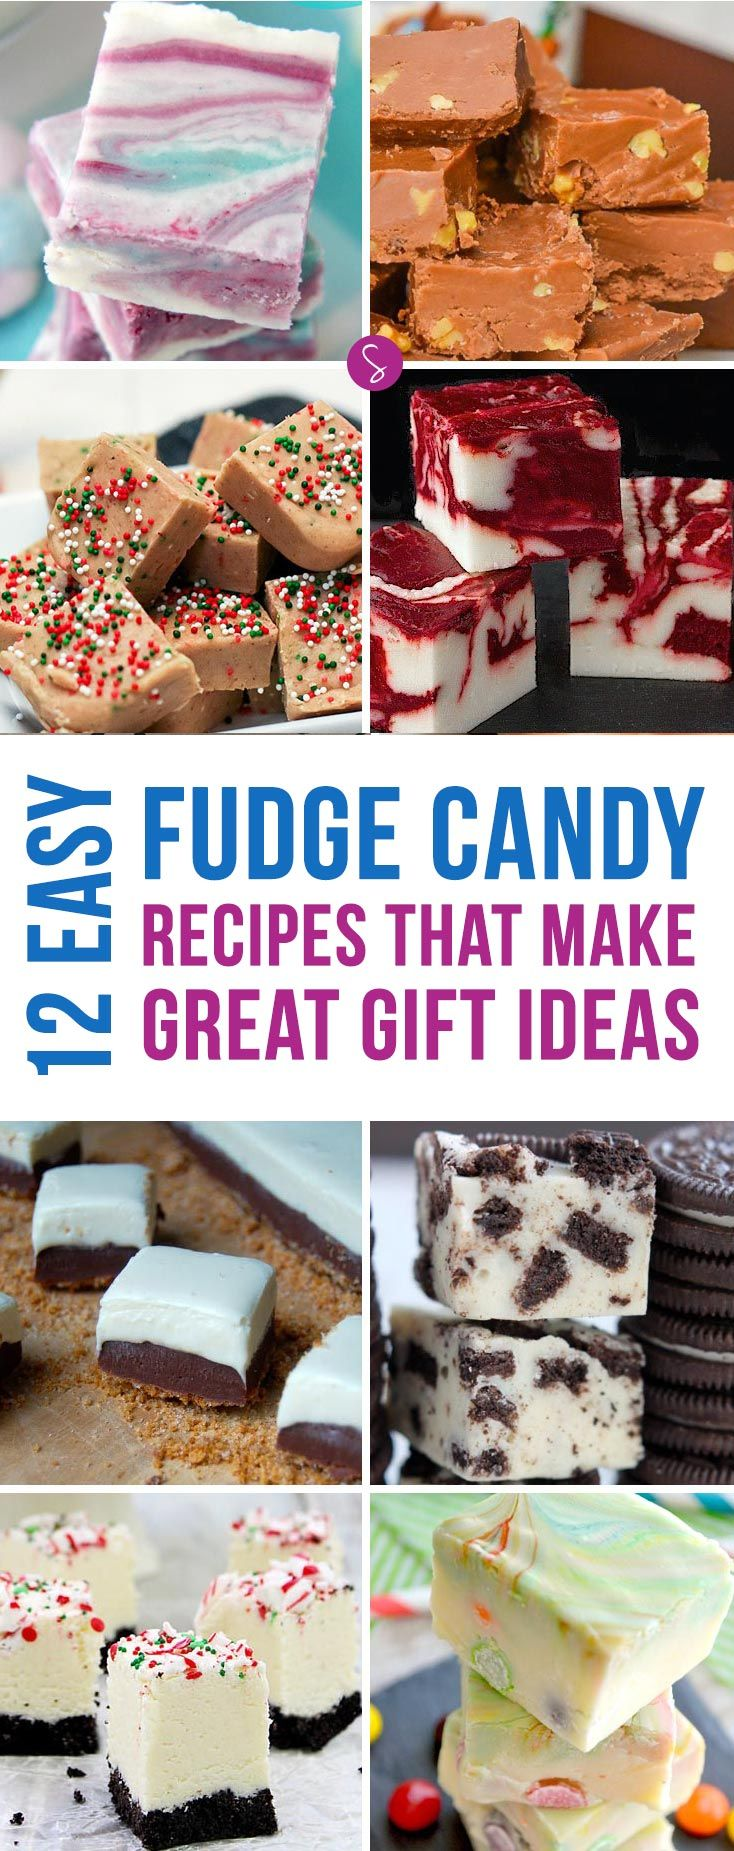 Best 155 gift ideas ideas on pinterest easter crafts hoppy easter homemade fudge candy recipes that make wonderfully edible gifts forumfinder